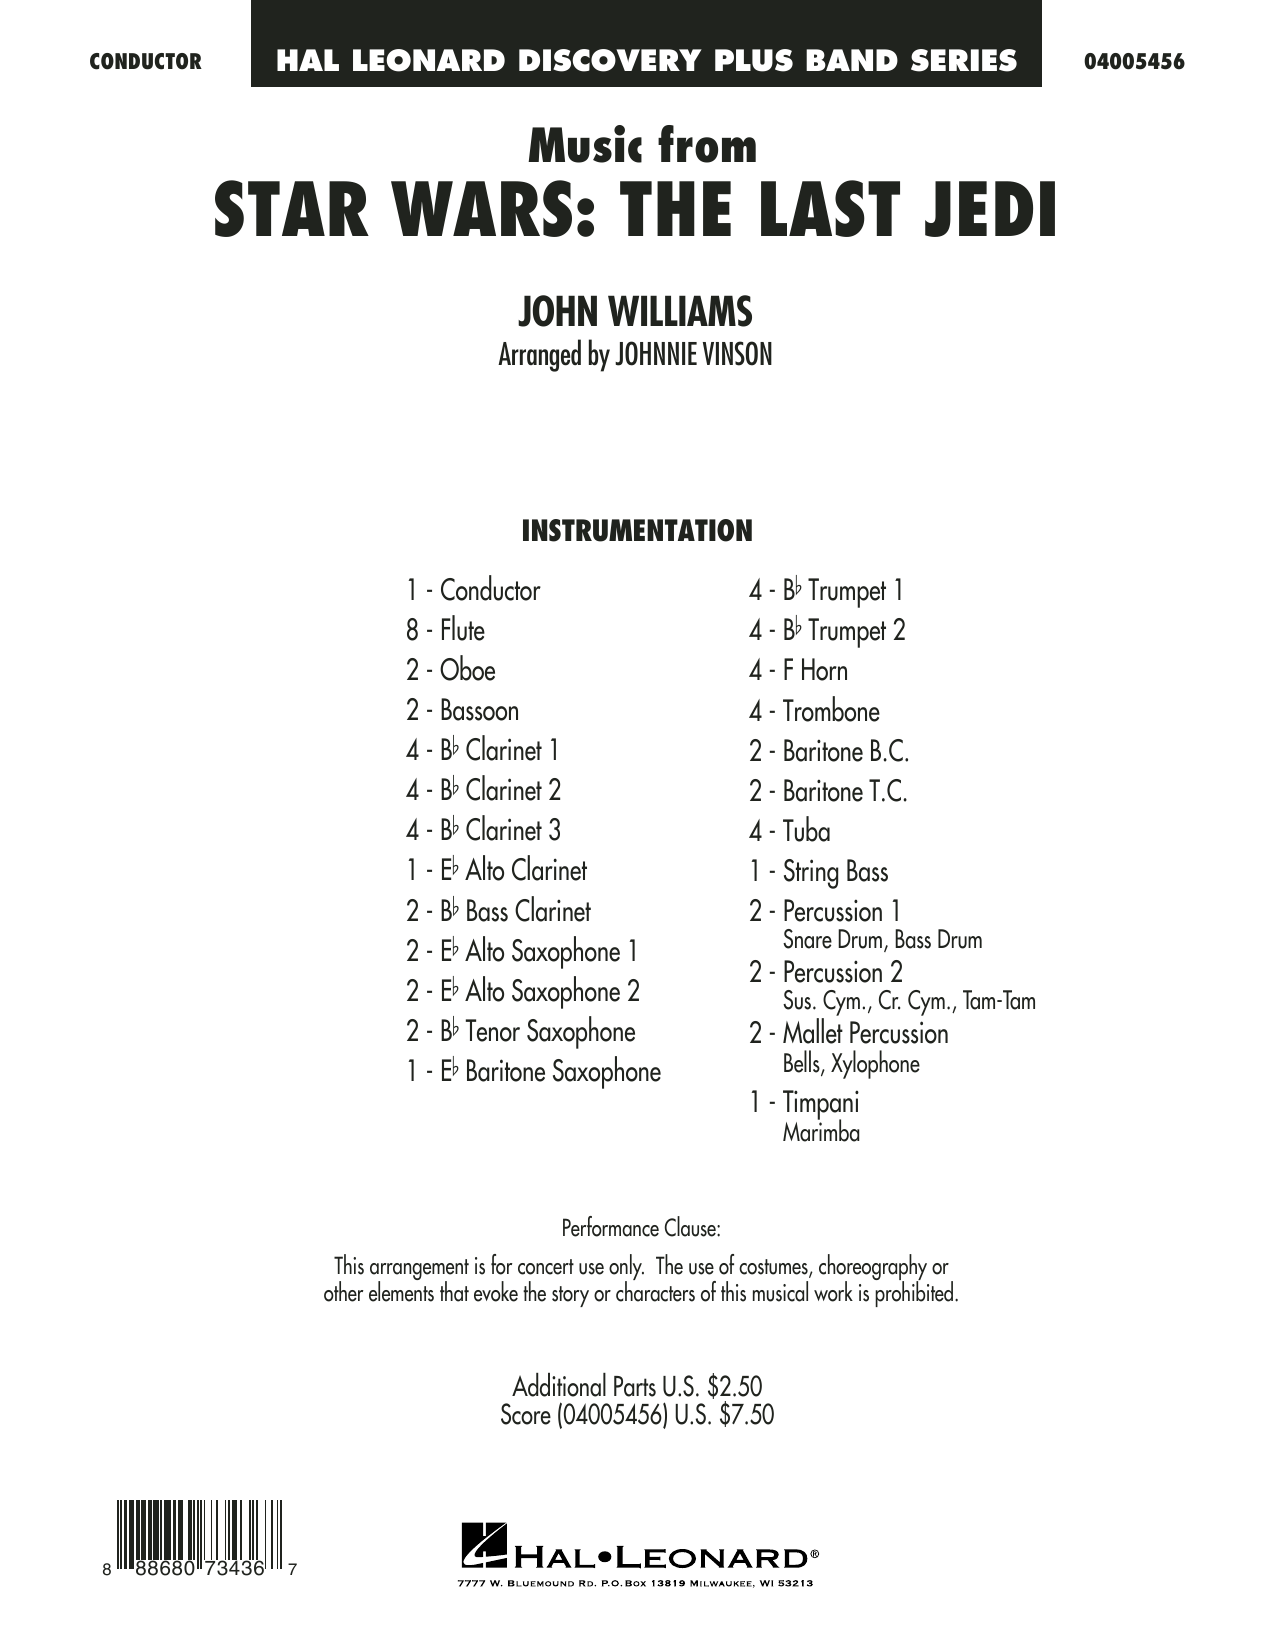 Johnnie Vinson Music from Star Wars: The Last Jedi - Conductor Score (Full Score) sheet music notes and chords. Download Printable PDF.